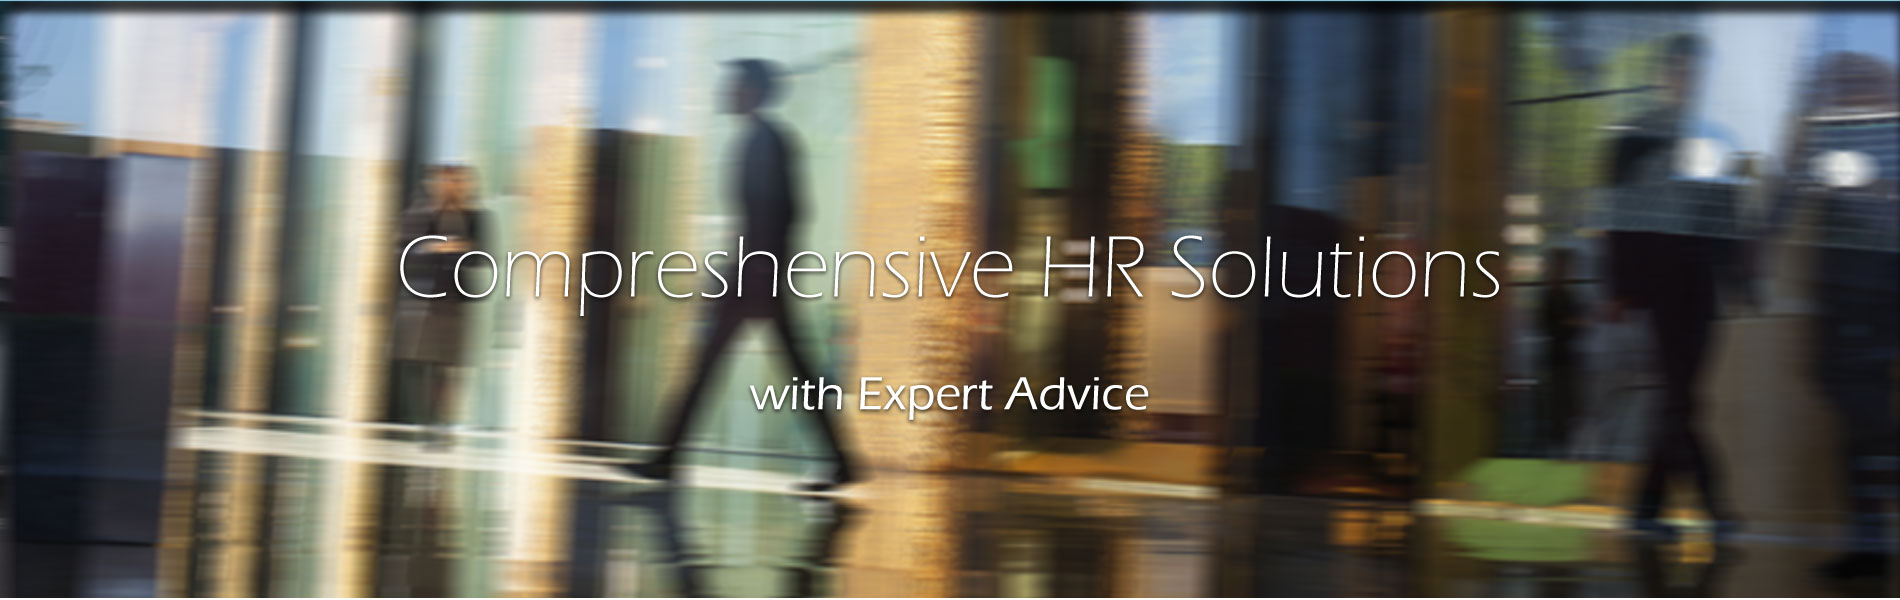 3-Comprehensive-HR-Solutions